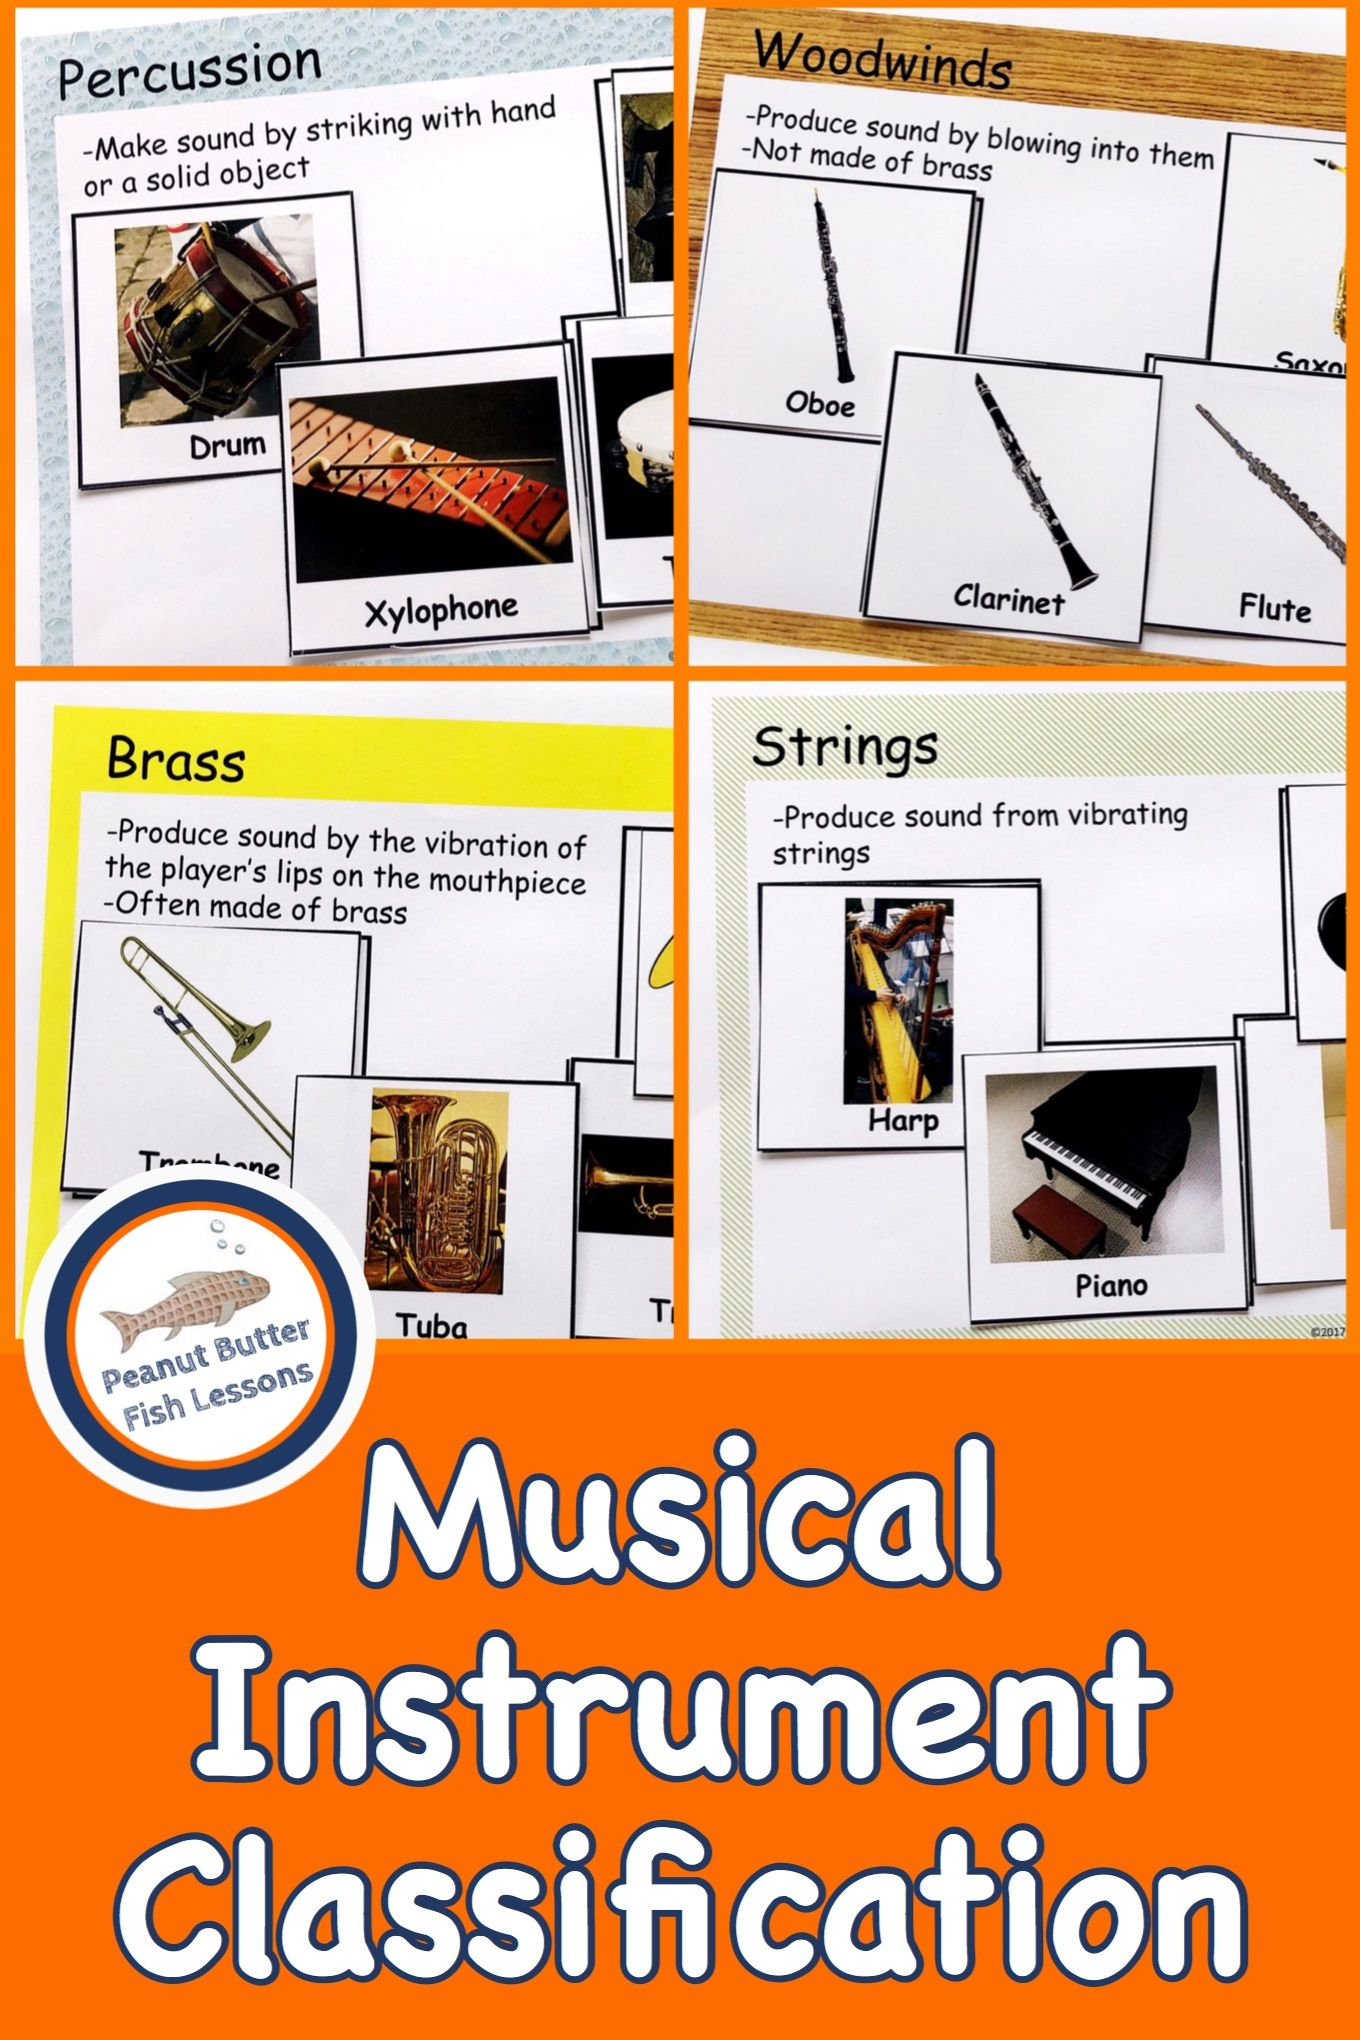 Musical Instrument Classification